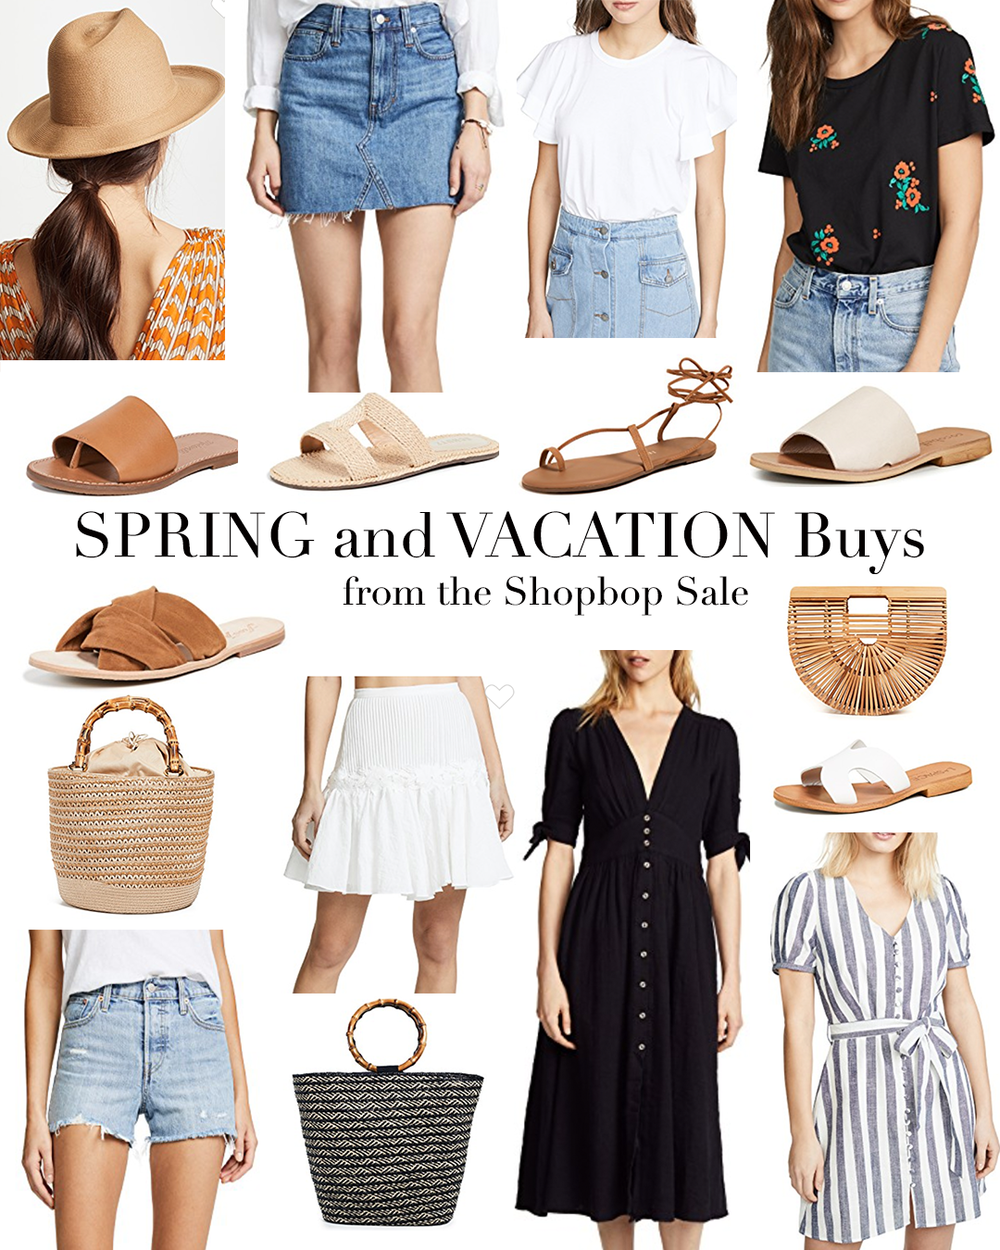 Spring and Vacation Buys from the Shopbop Sale | www.girlmeetsgold.com